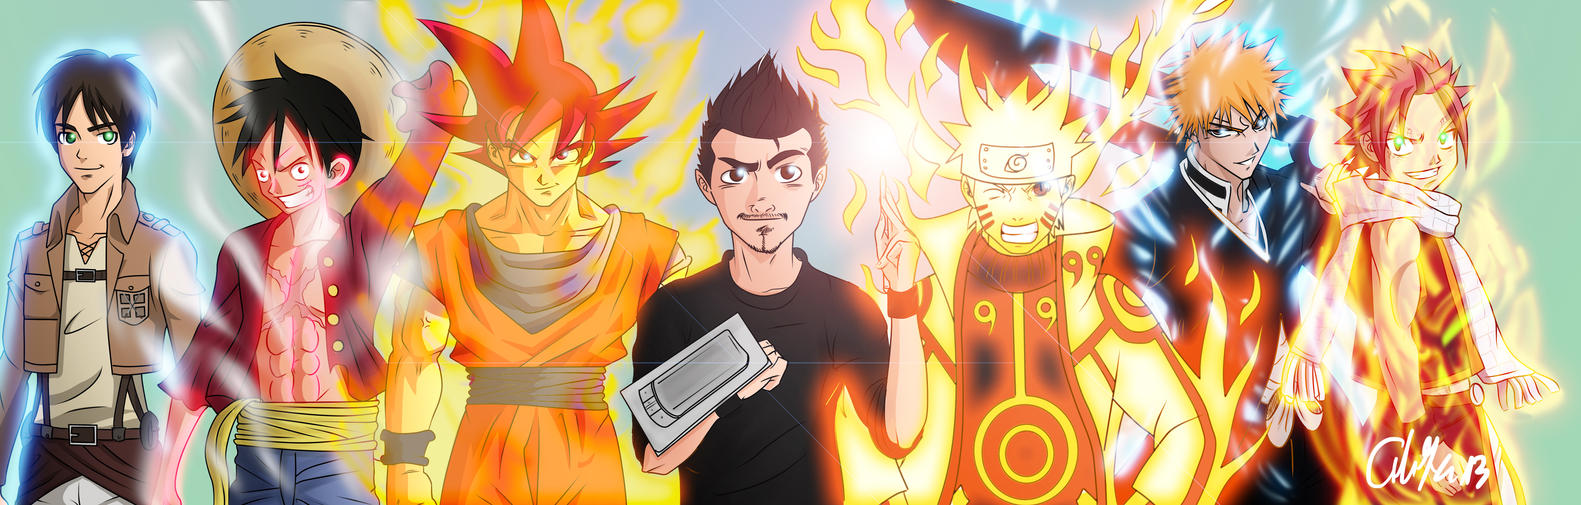 Me and my Heroes by francesco8657